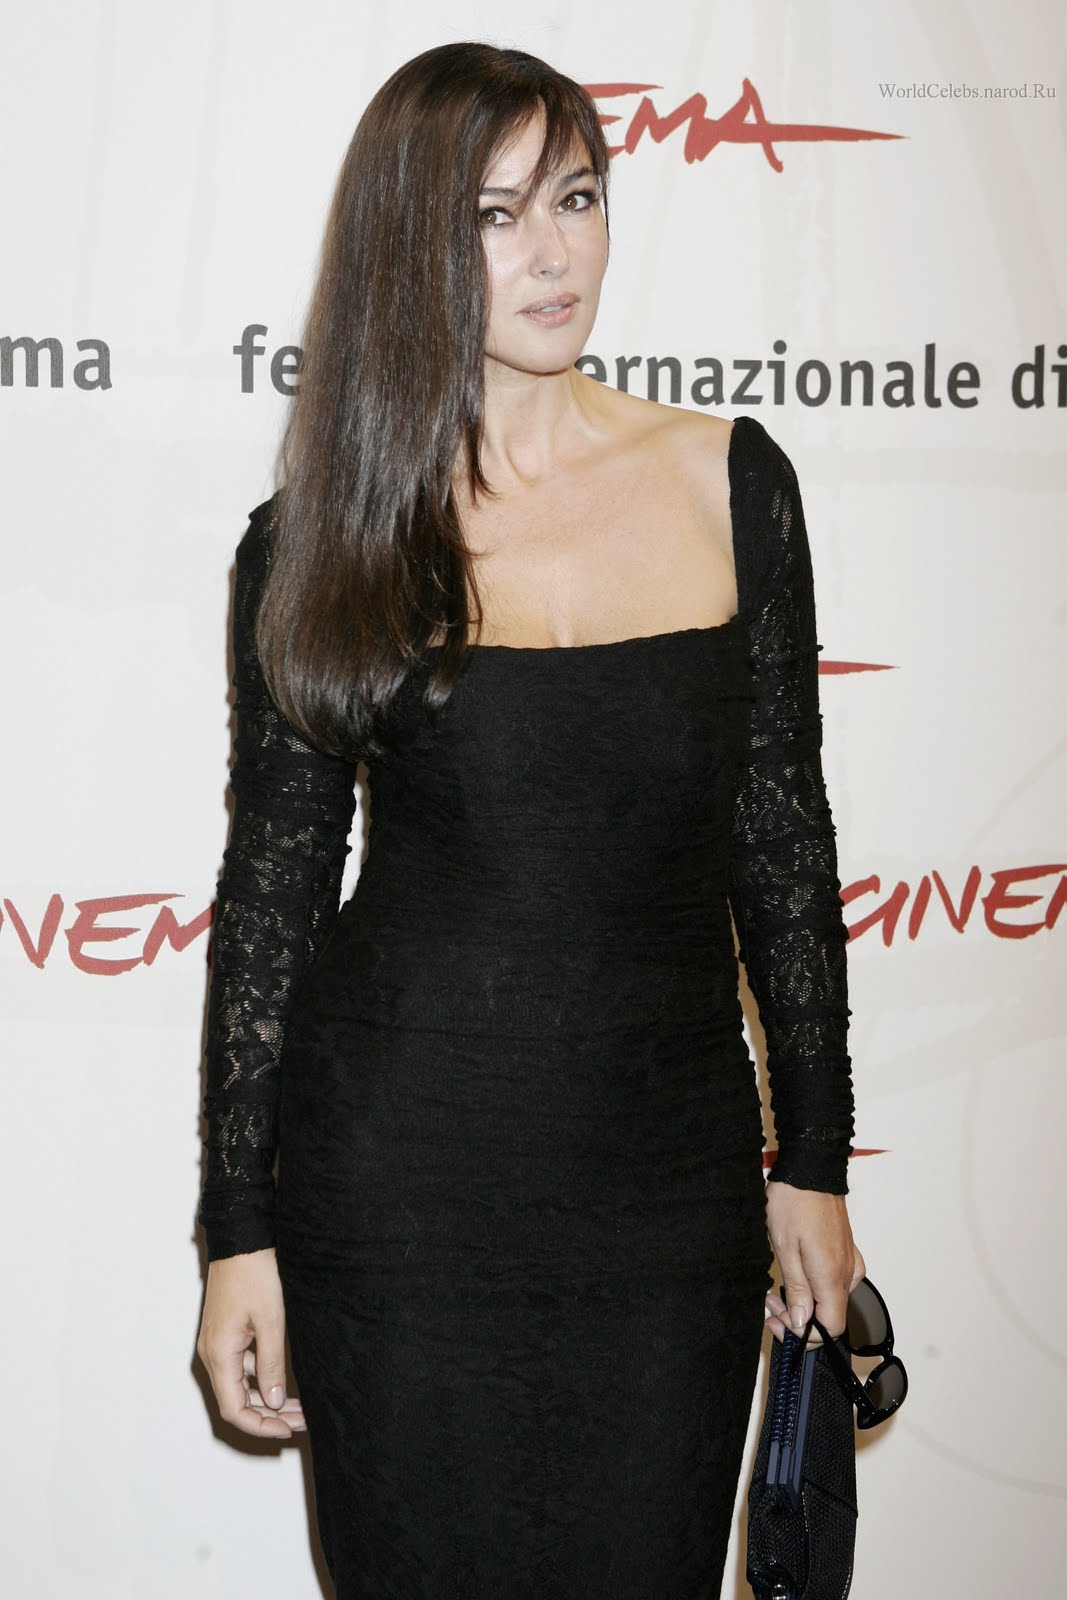 http://4.bp.blogspot.com/--dickWAMqyo/TrF3m1W15pI/AAAAAAAAA7I/GRF42btXFqo/s1600/monica_bellucci_wallpaper_looking_gorgeous_photo_shoot.jpg